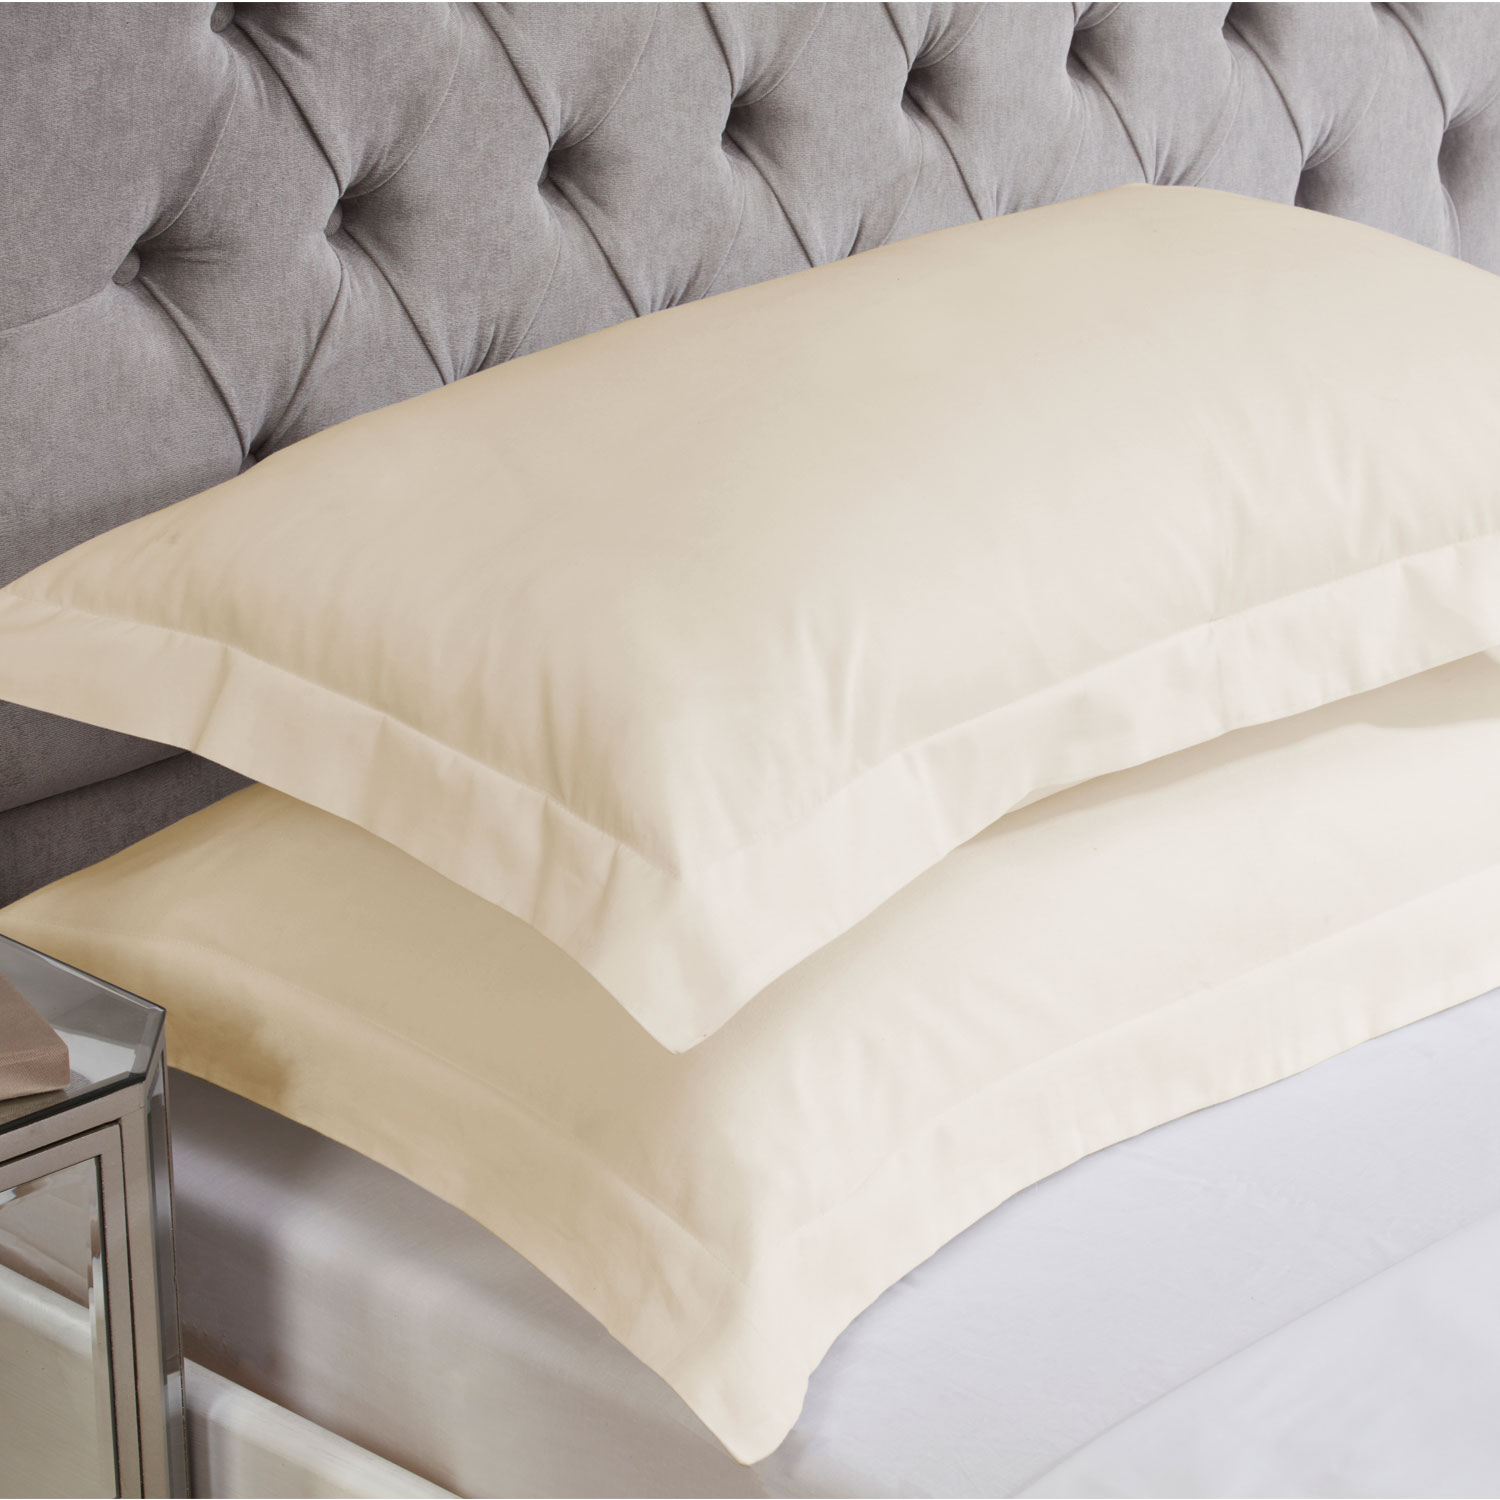 Champagne Cotton Rich Percale Easy Care Oxford Pillowcases (Pair)